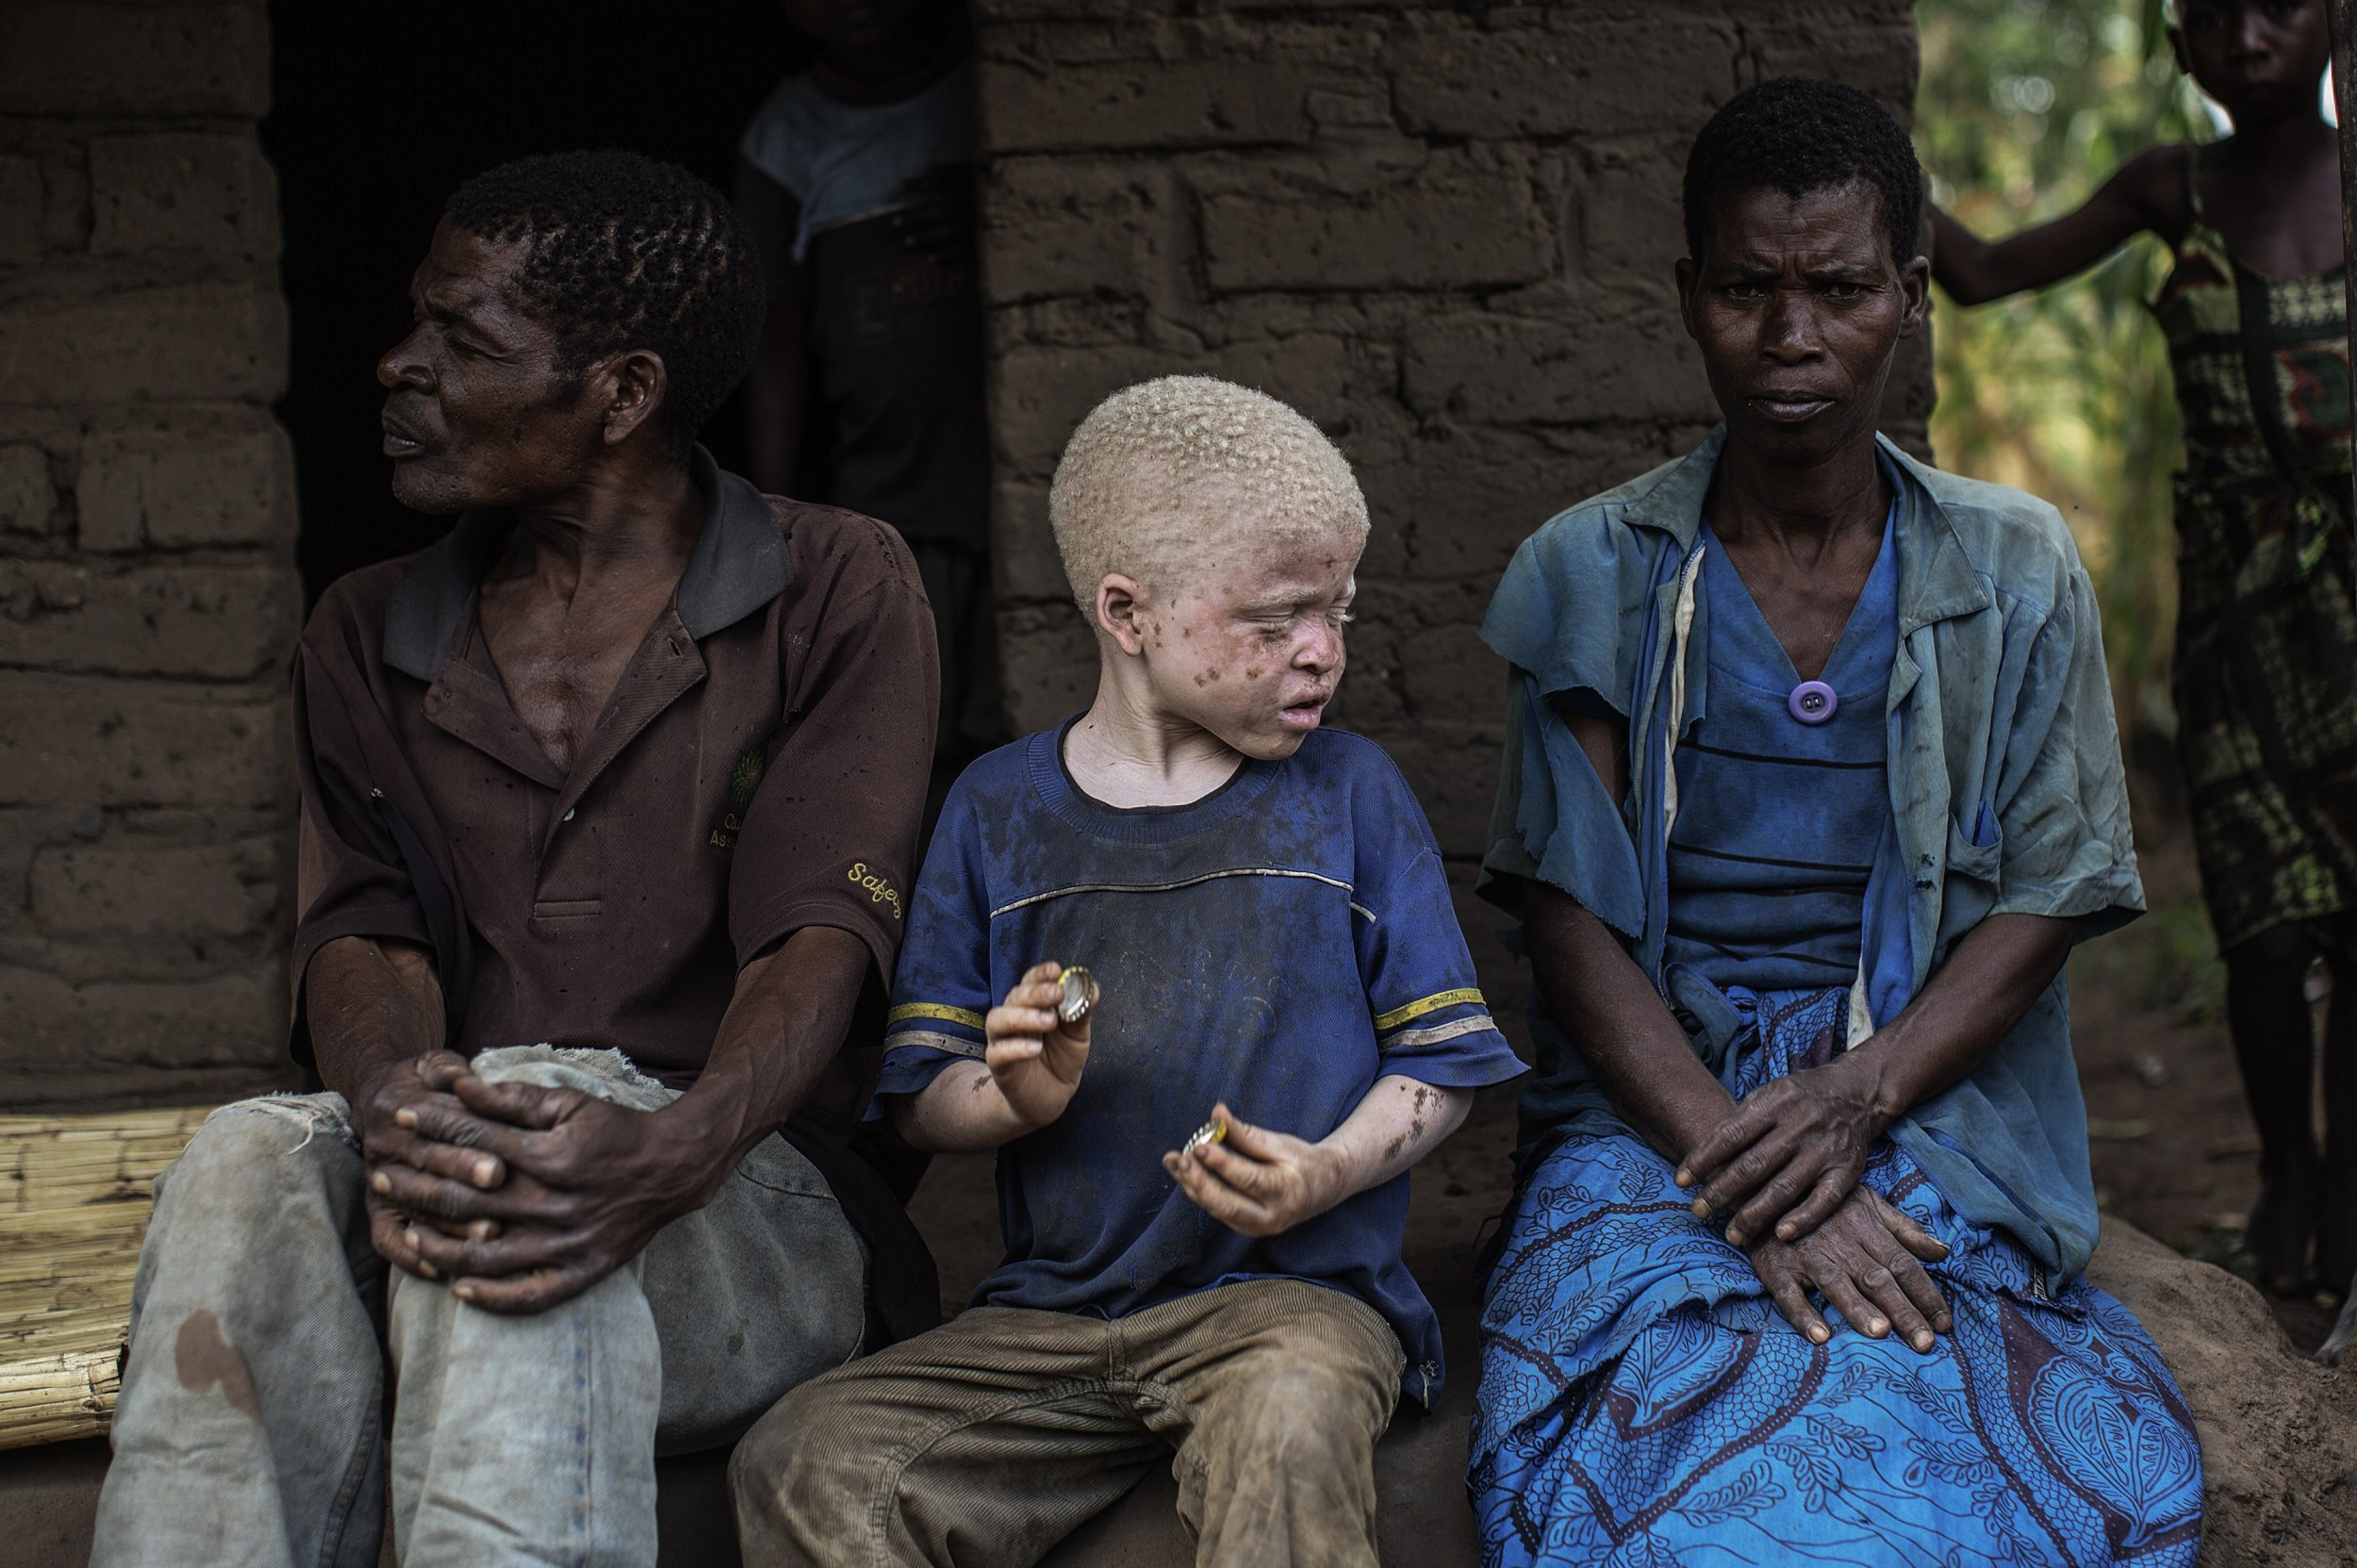 Malawian albino child with parents